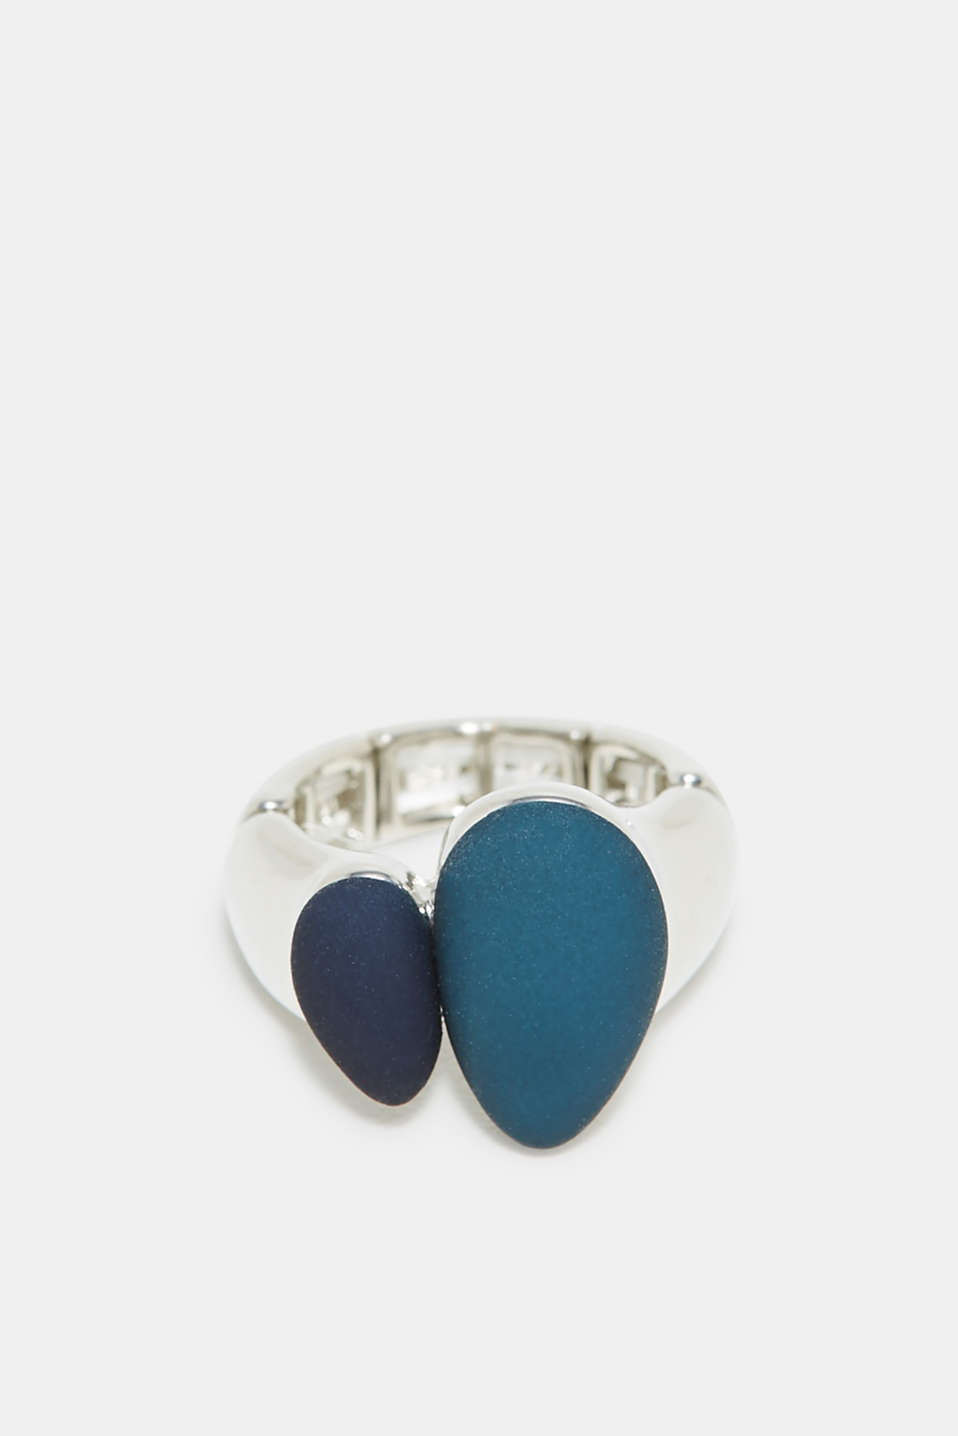 Esprit - Ring with teardrop-shaped gemstone